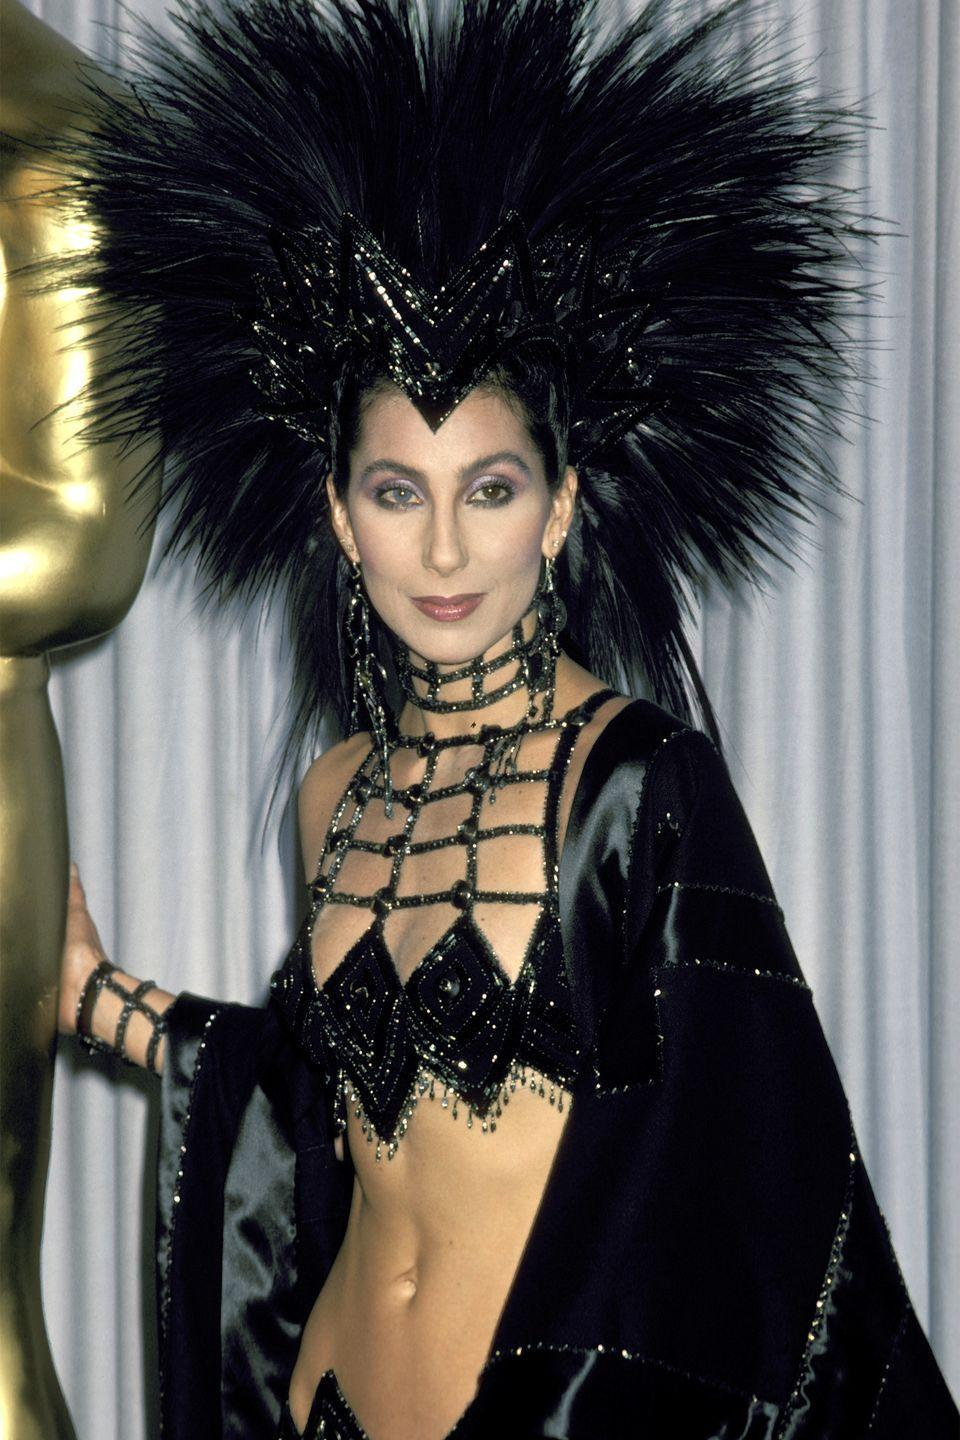 <p>Since Cher's abs can't be an accessory of their own, we'll have to settle for her feathered headpieces. The star rocked them from the stage to the red carpet, and even wore a black sparkly one at the 1986 Oscars. </p>